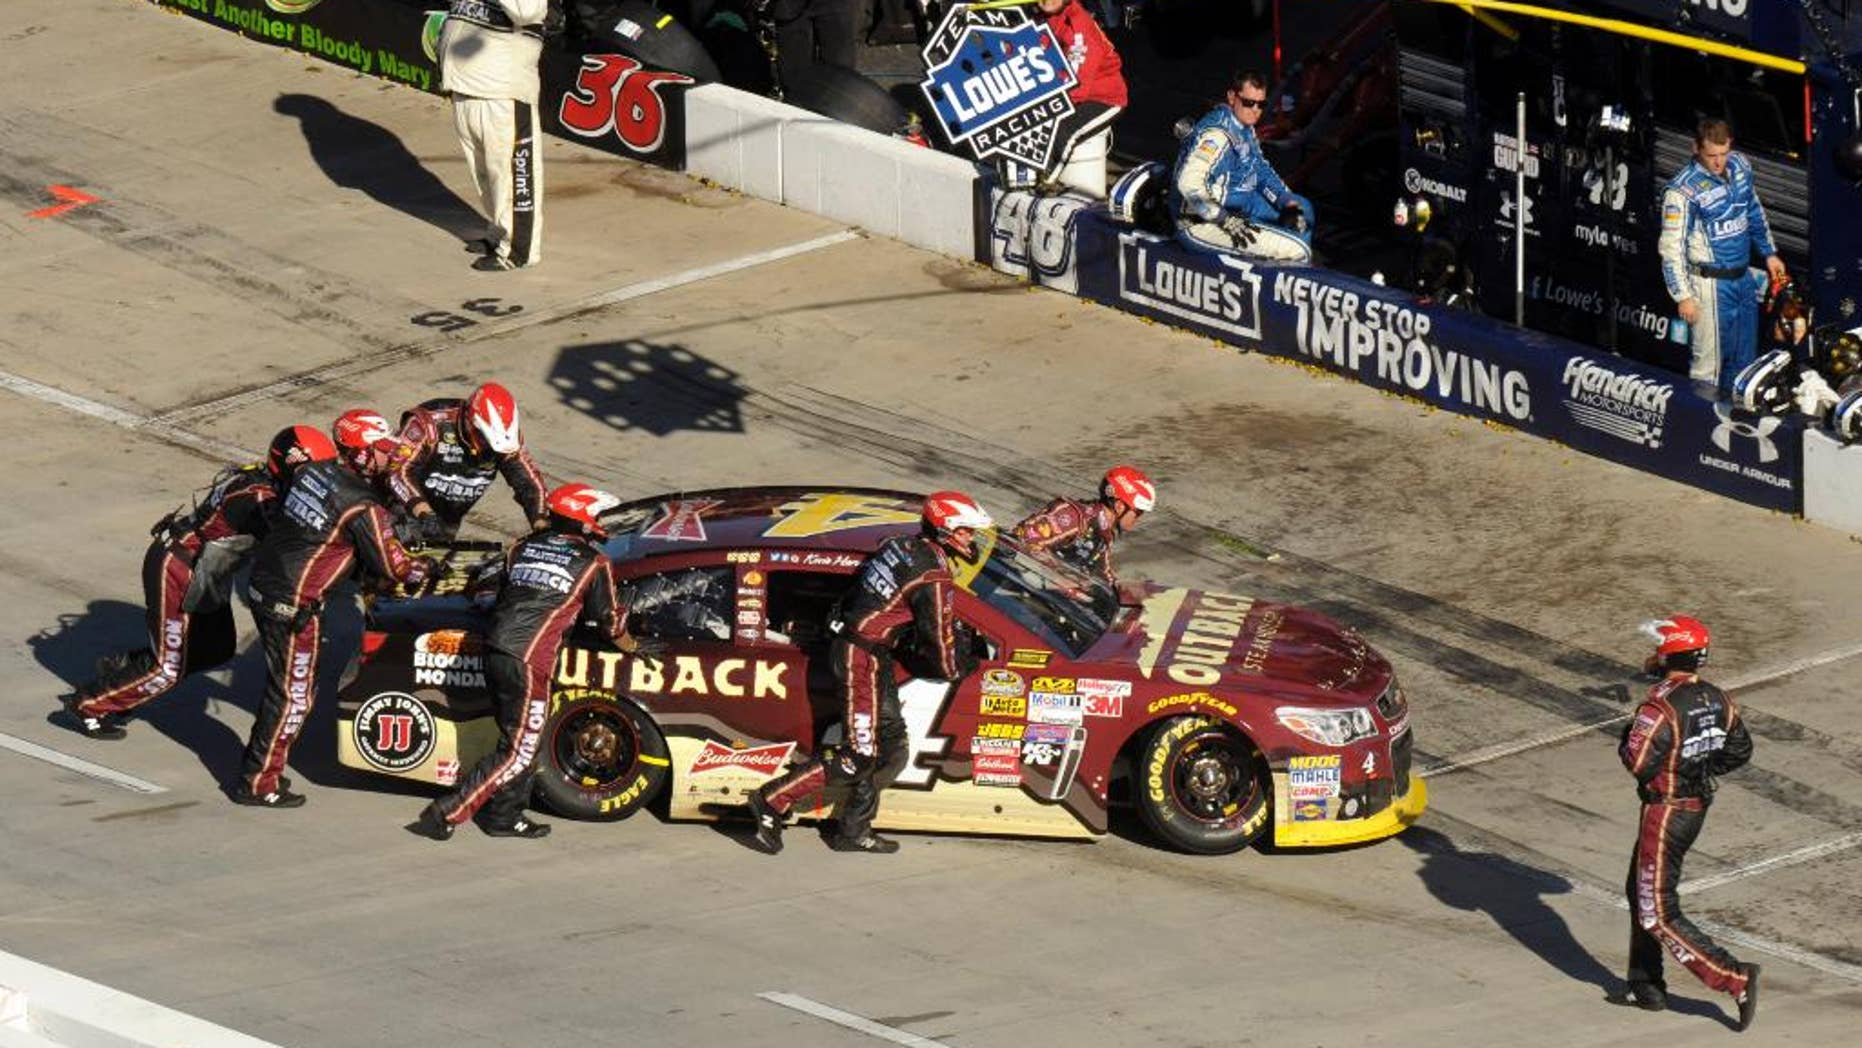 The pit crew for Kevin Harvick (4) pushes his car into the garage during the NASCAR Sprint Cup Series auto race at Martinsville Speedway in Martinsville, Va., Sunday, Oct. 26, 2014. (AP Photo/Don Petersen)